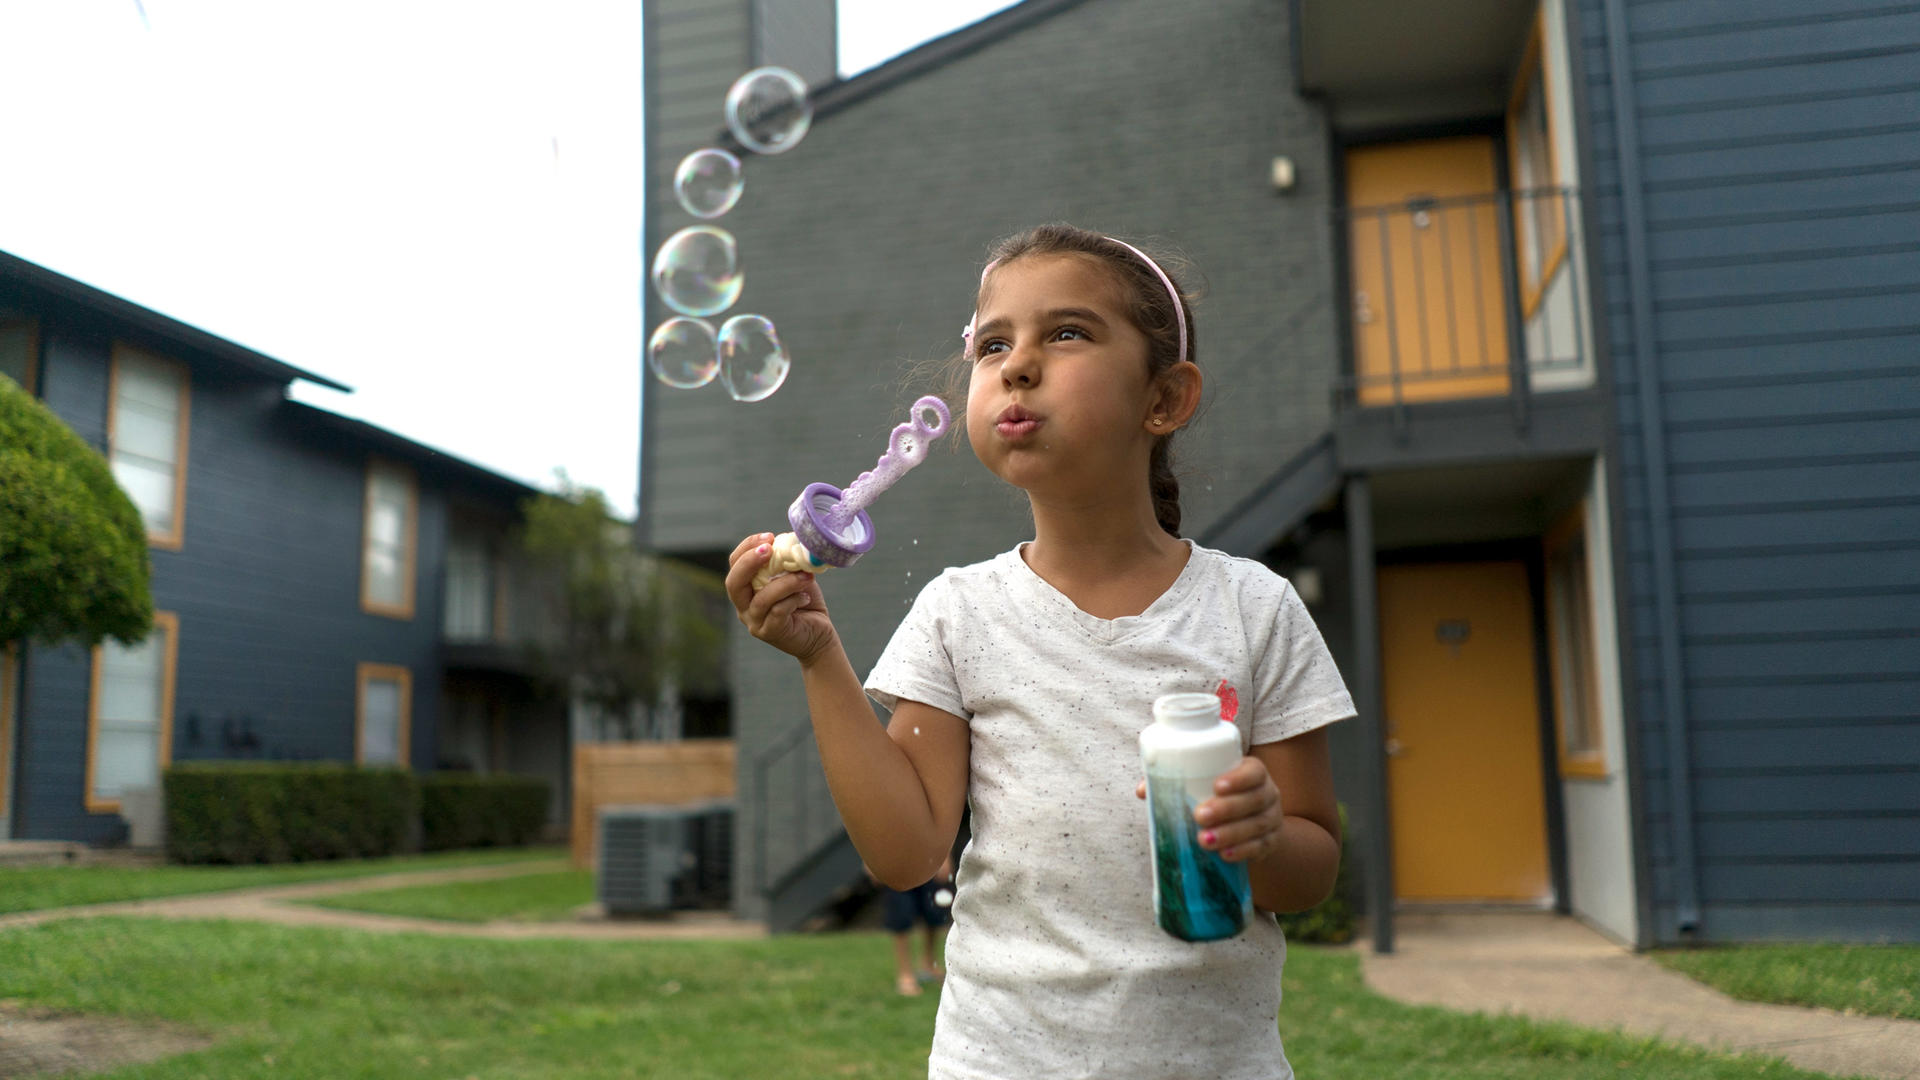 Jori blows bubbles outside her family's apartment